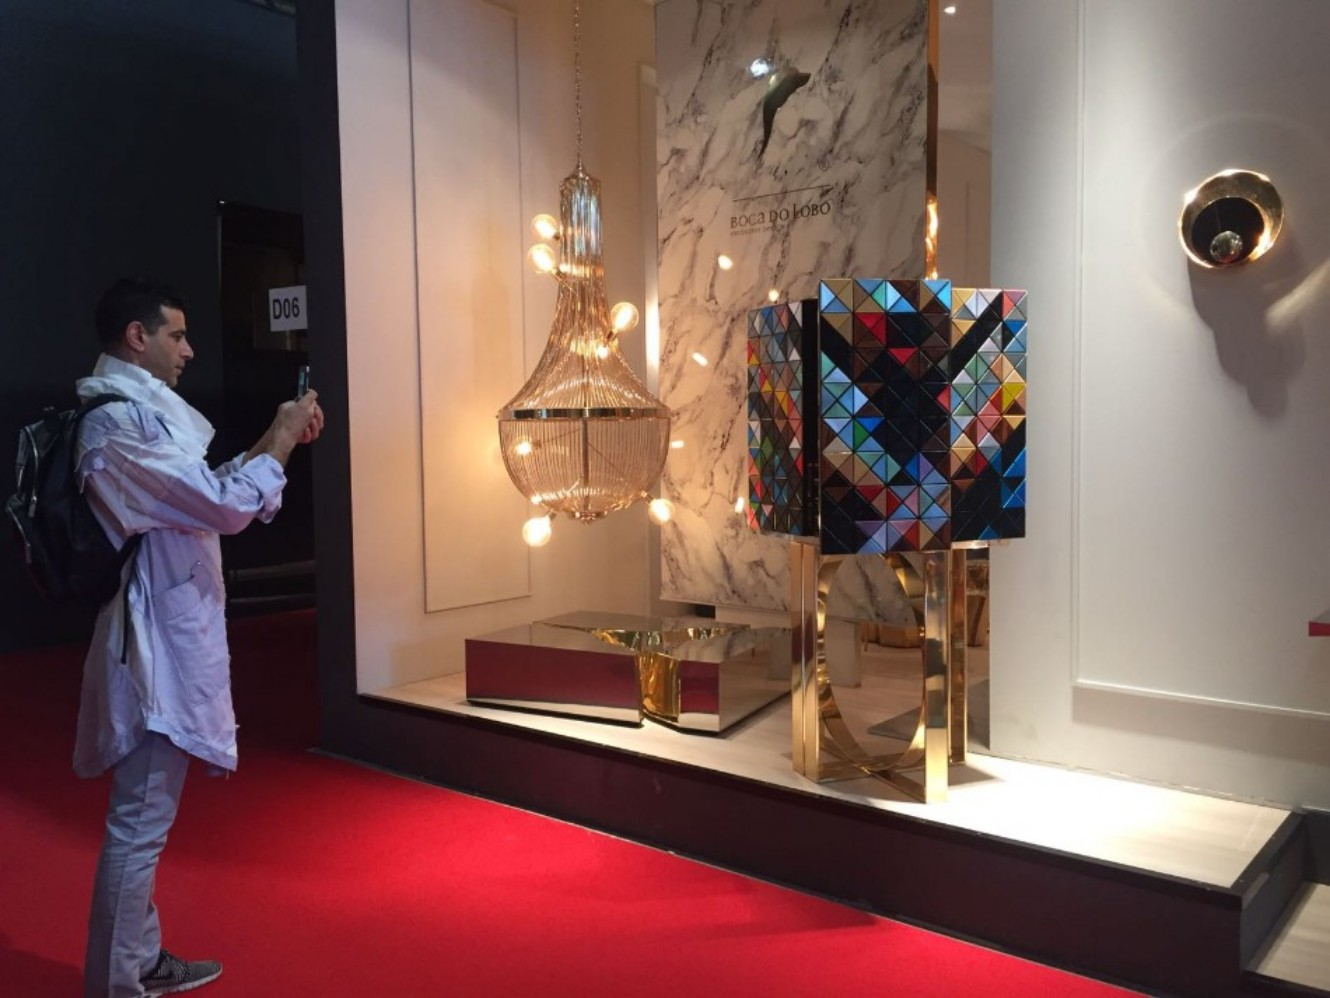 salone del mobile Boca do Lobo at Salone del Mobile 2017 – Day 1 WhatsApp Image 2017 04 04 at 09